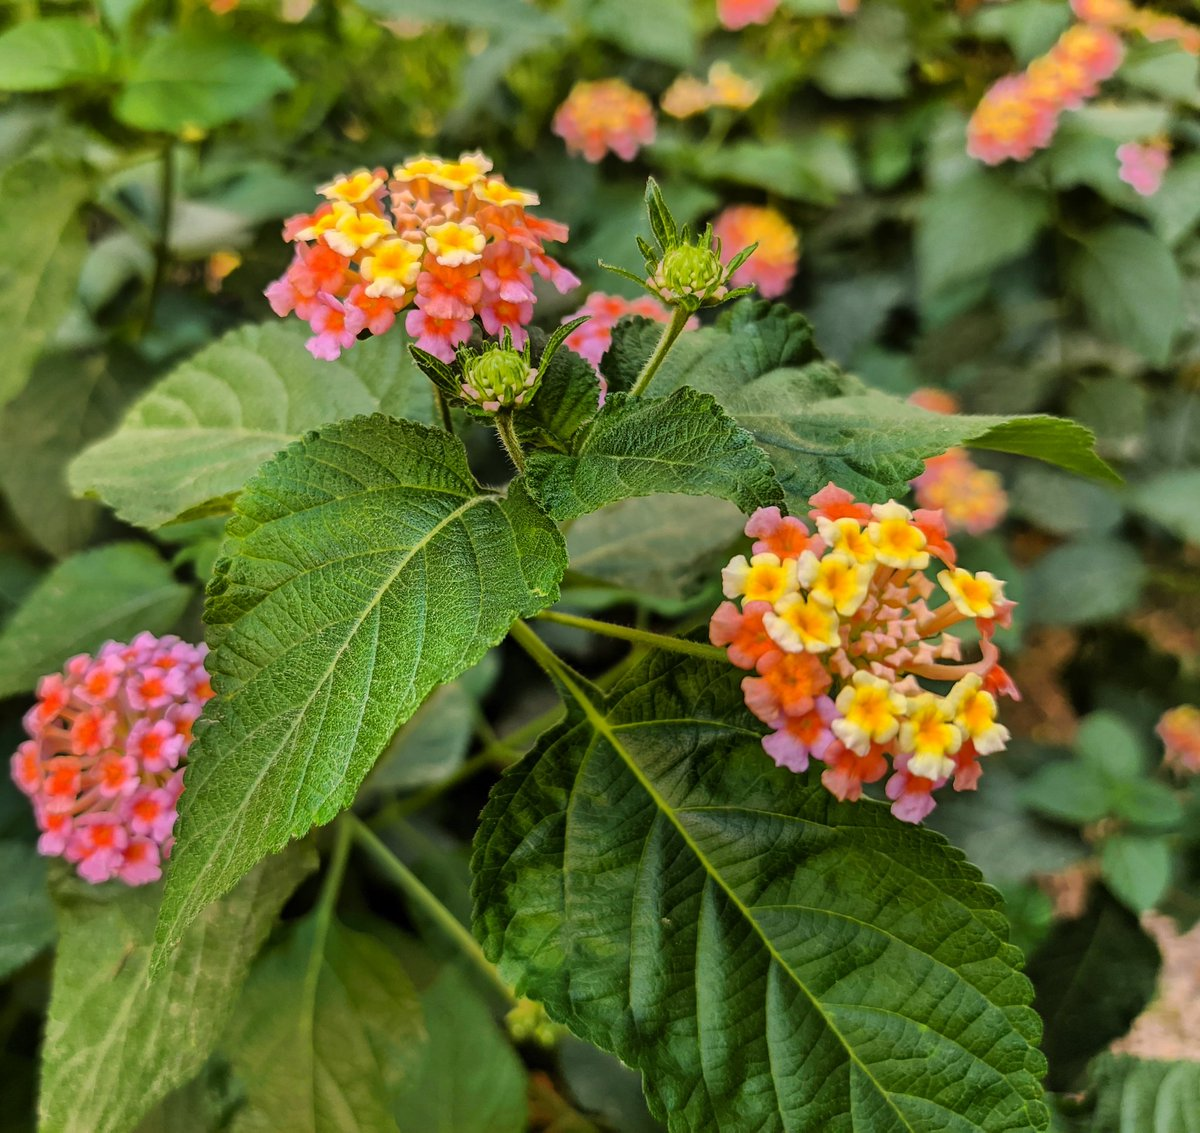 Here are few Lantana Camara #flowers to give a #colorful #delight to your #day!   #LantanaCamara#color #photography #mobilephotography #OnePlus #vsco #vscocam #vscophile https://t.co/cUtdhFKHjL